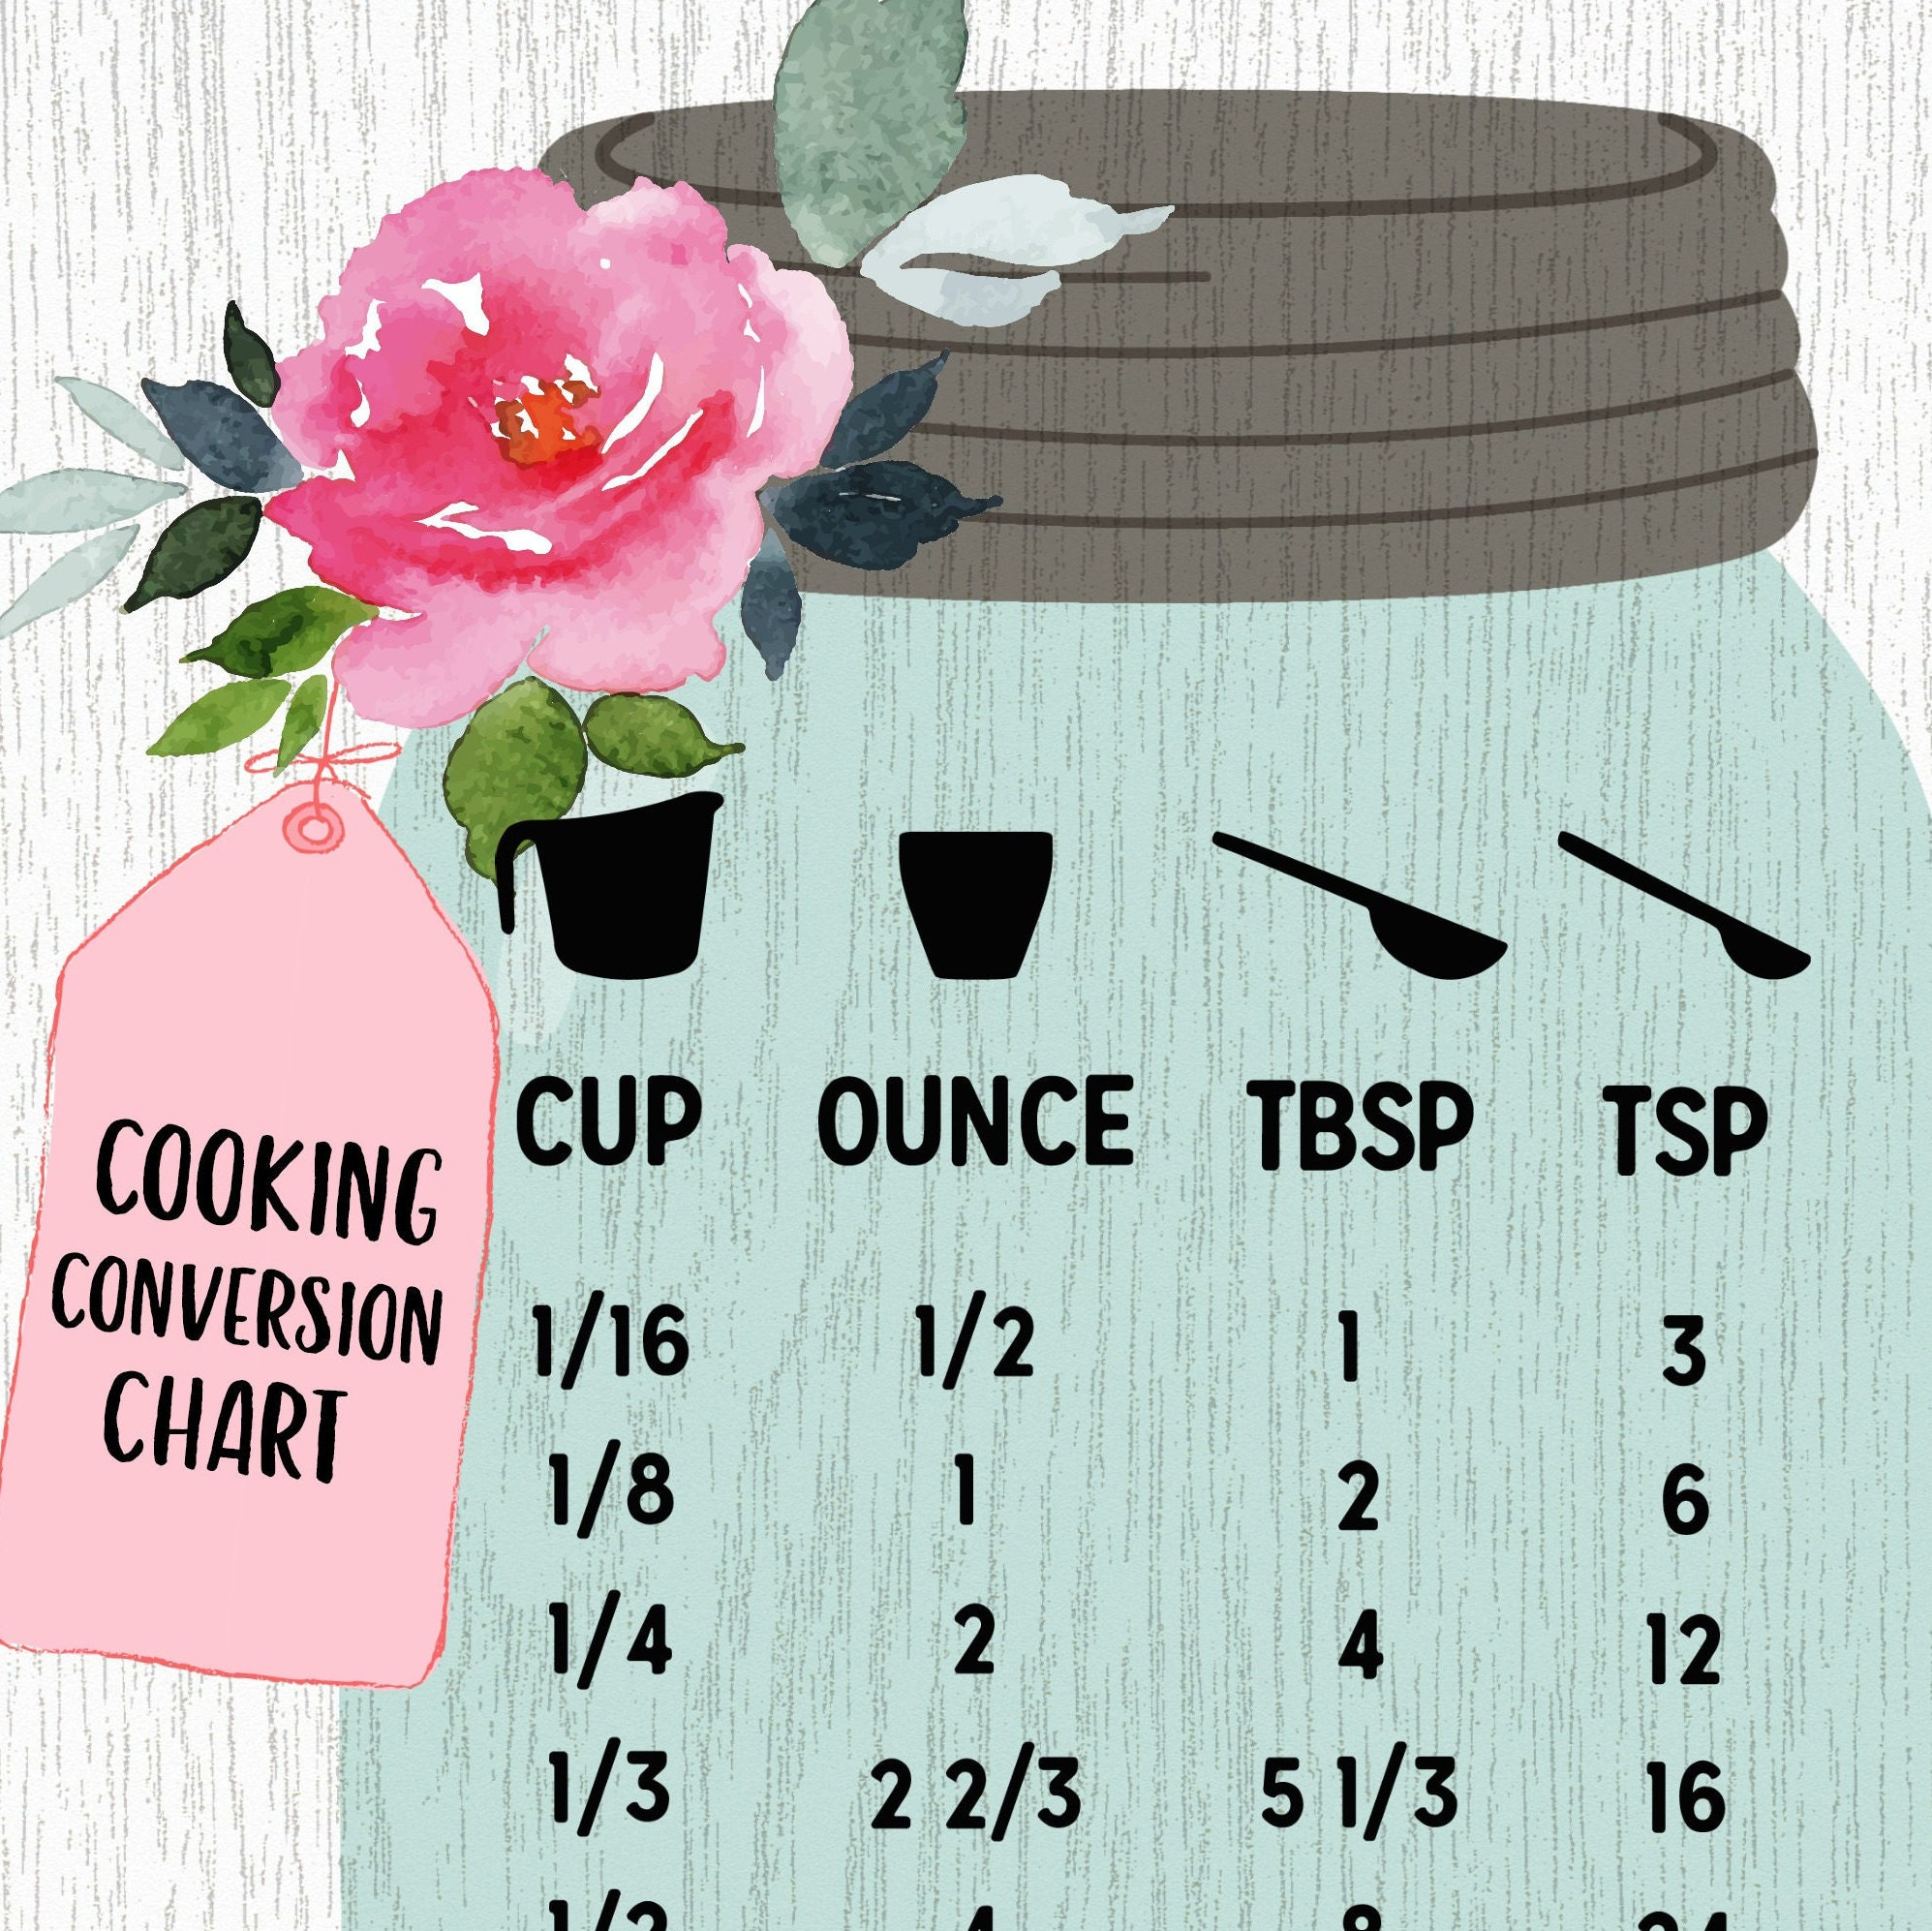 Cooking conversion chart mason jar floral baking cooking conversion chart mason jar floral baking measurements kitchen magnetic sign nvjuhfo Gallery